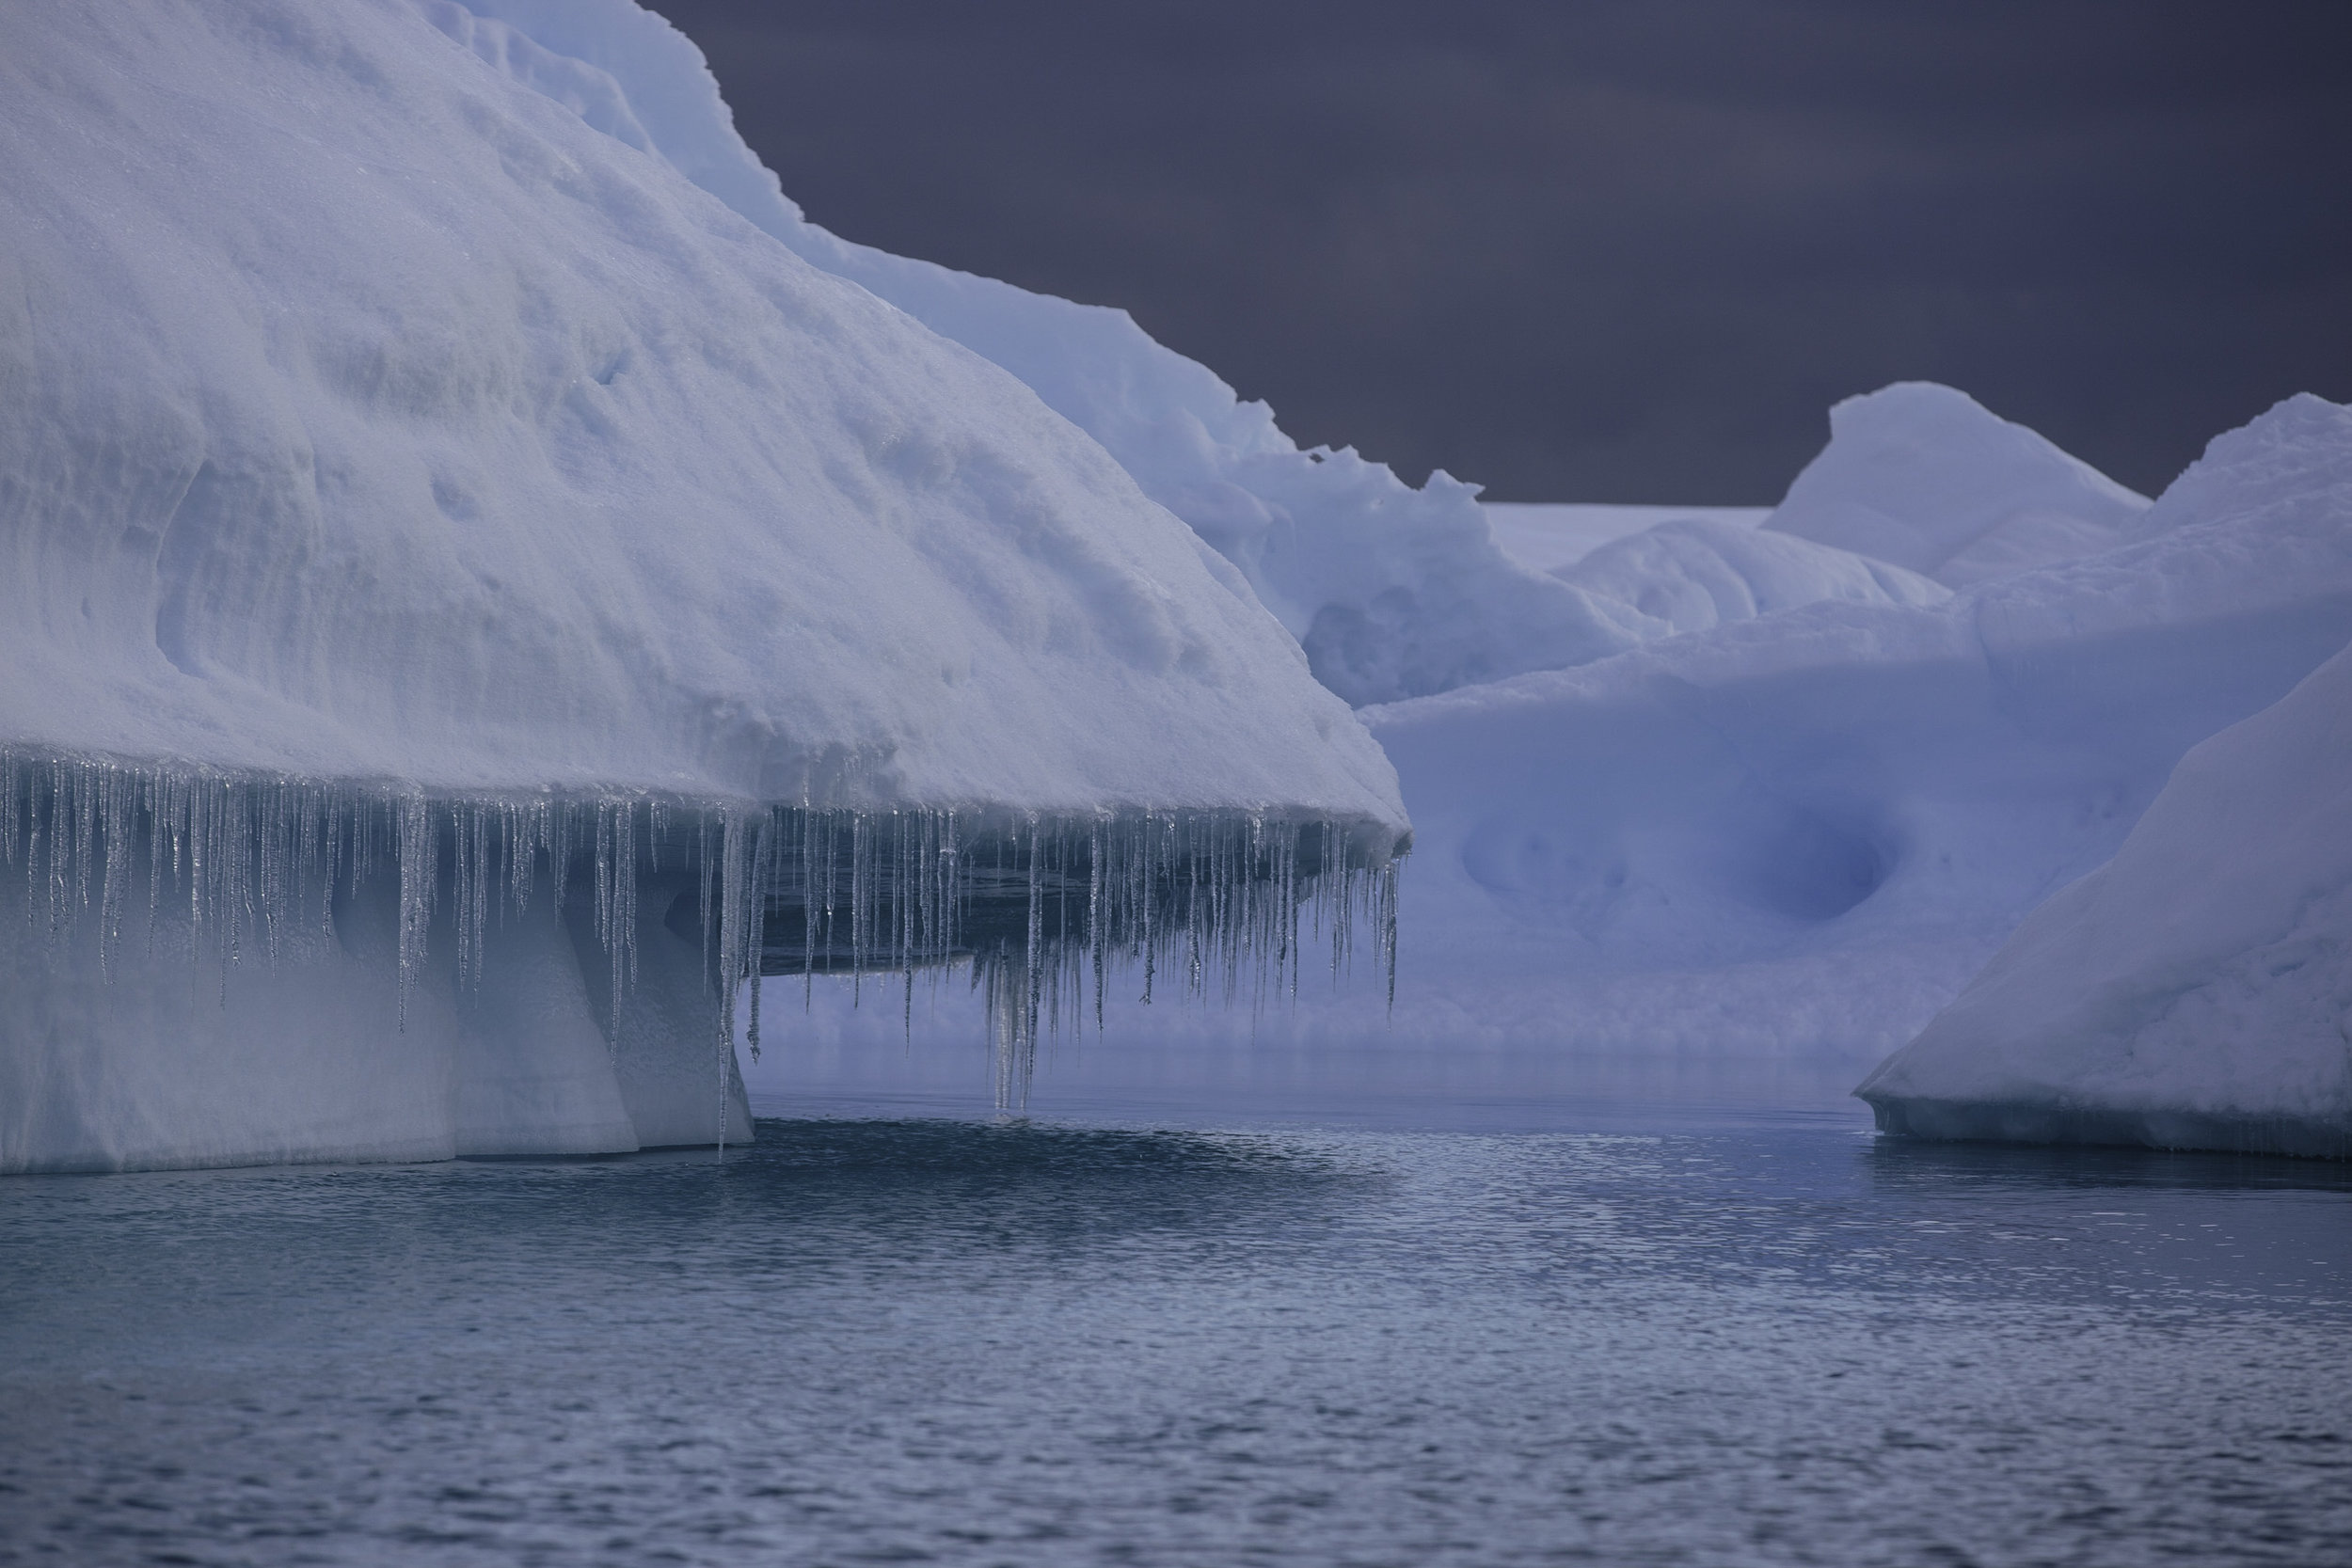 Icicles form after a day of intense sunshine in an iceberg graveyard just north of the Lemaire Channel.